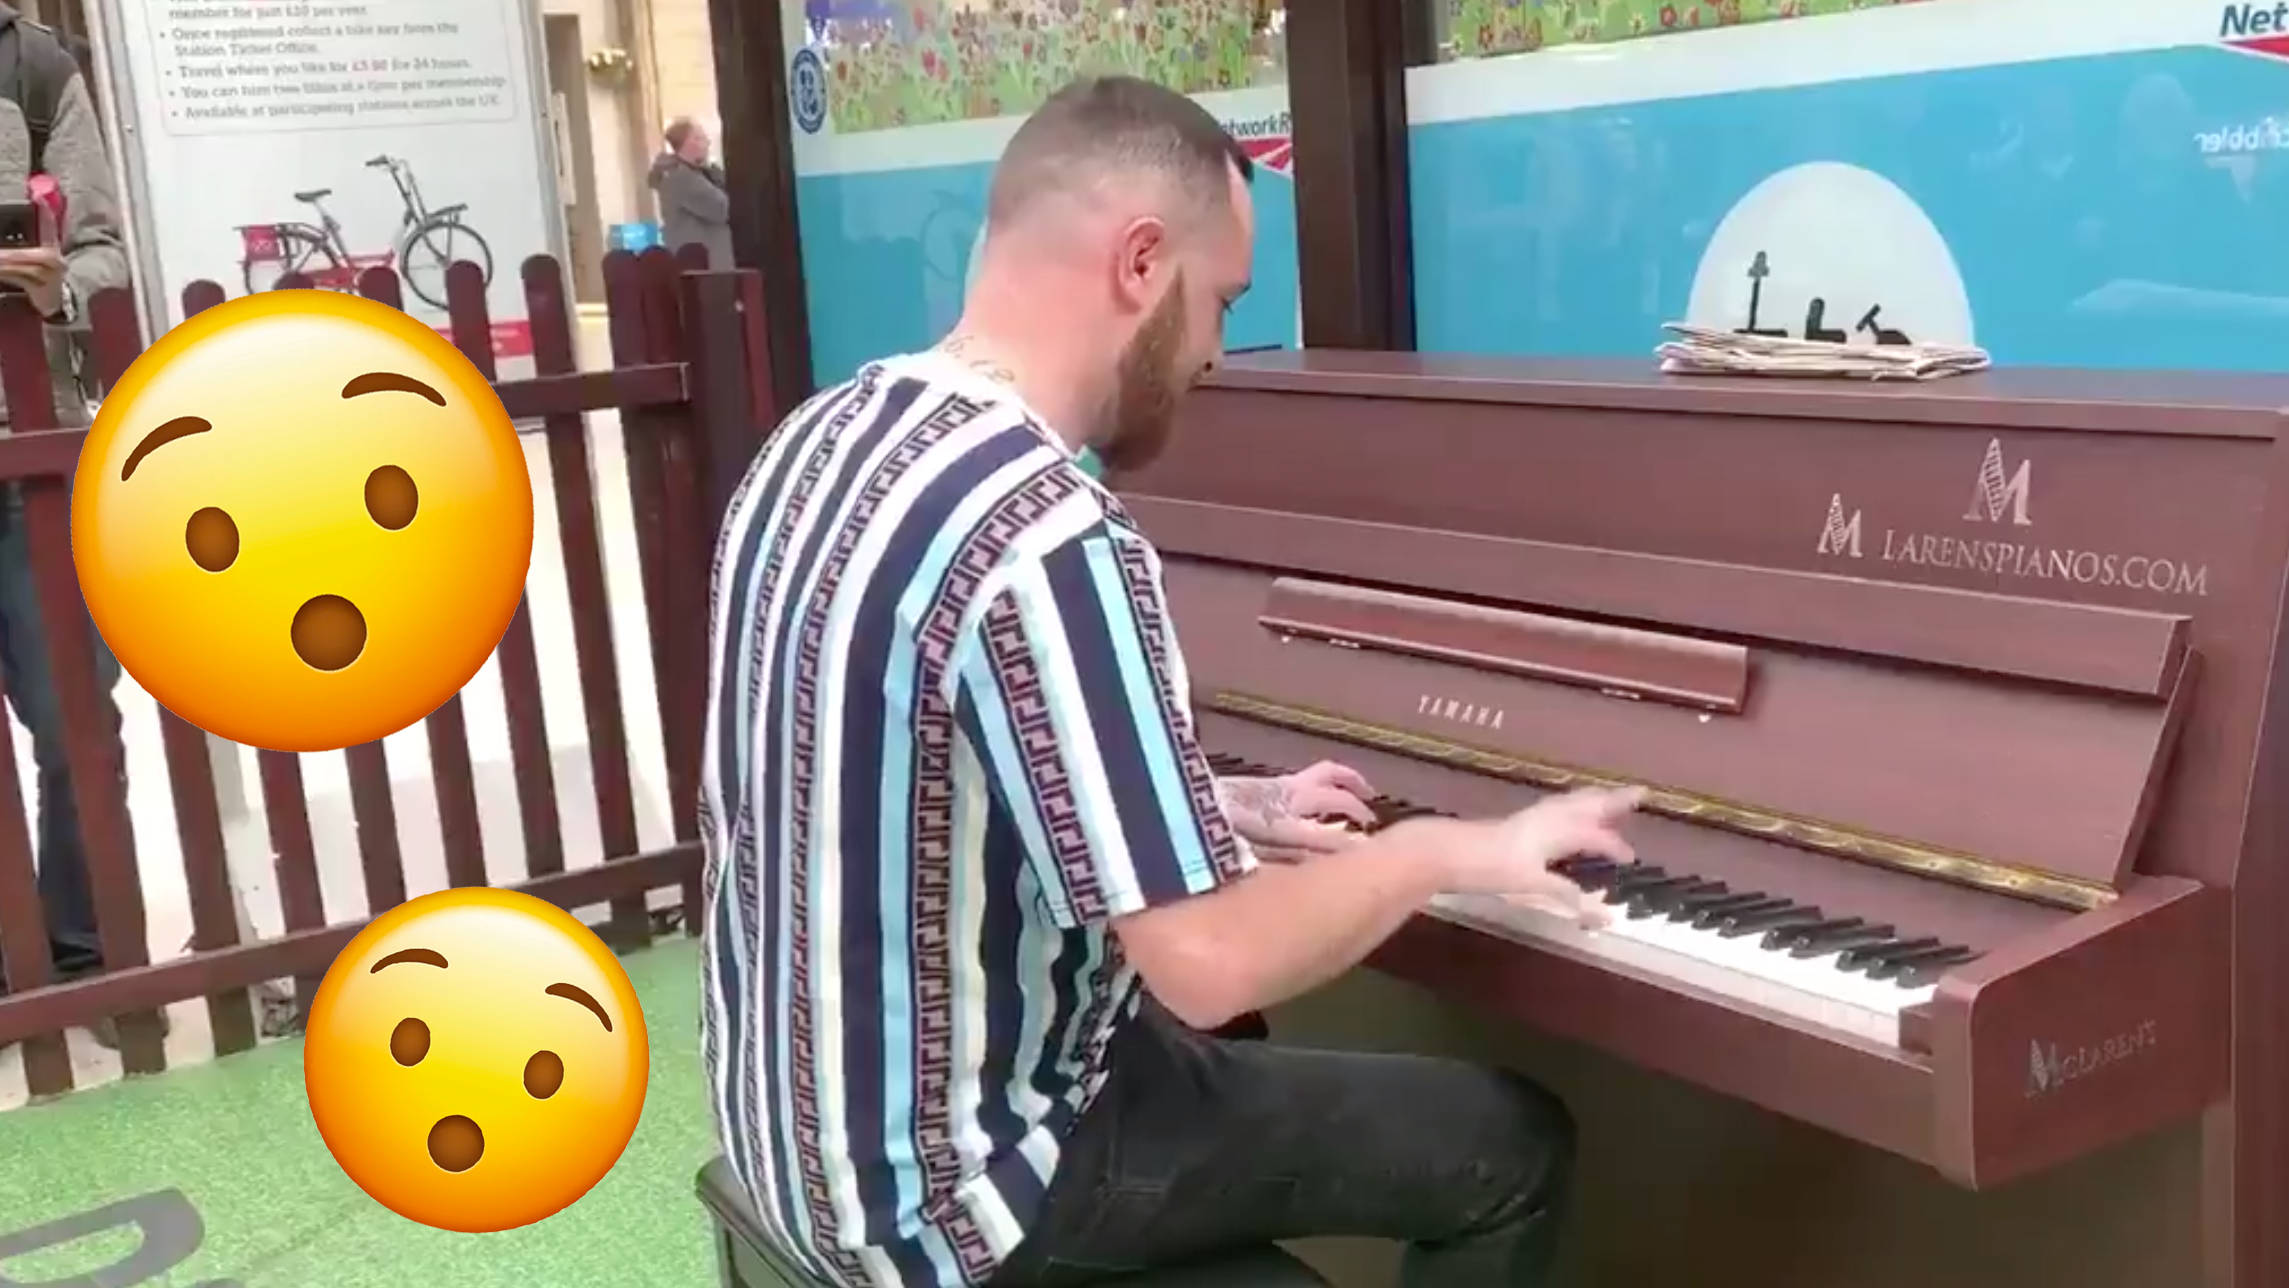 Talented guy plays GBX anthem on piano at Glasgow Central